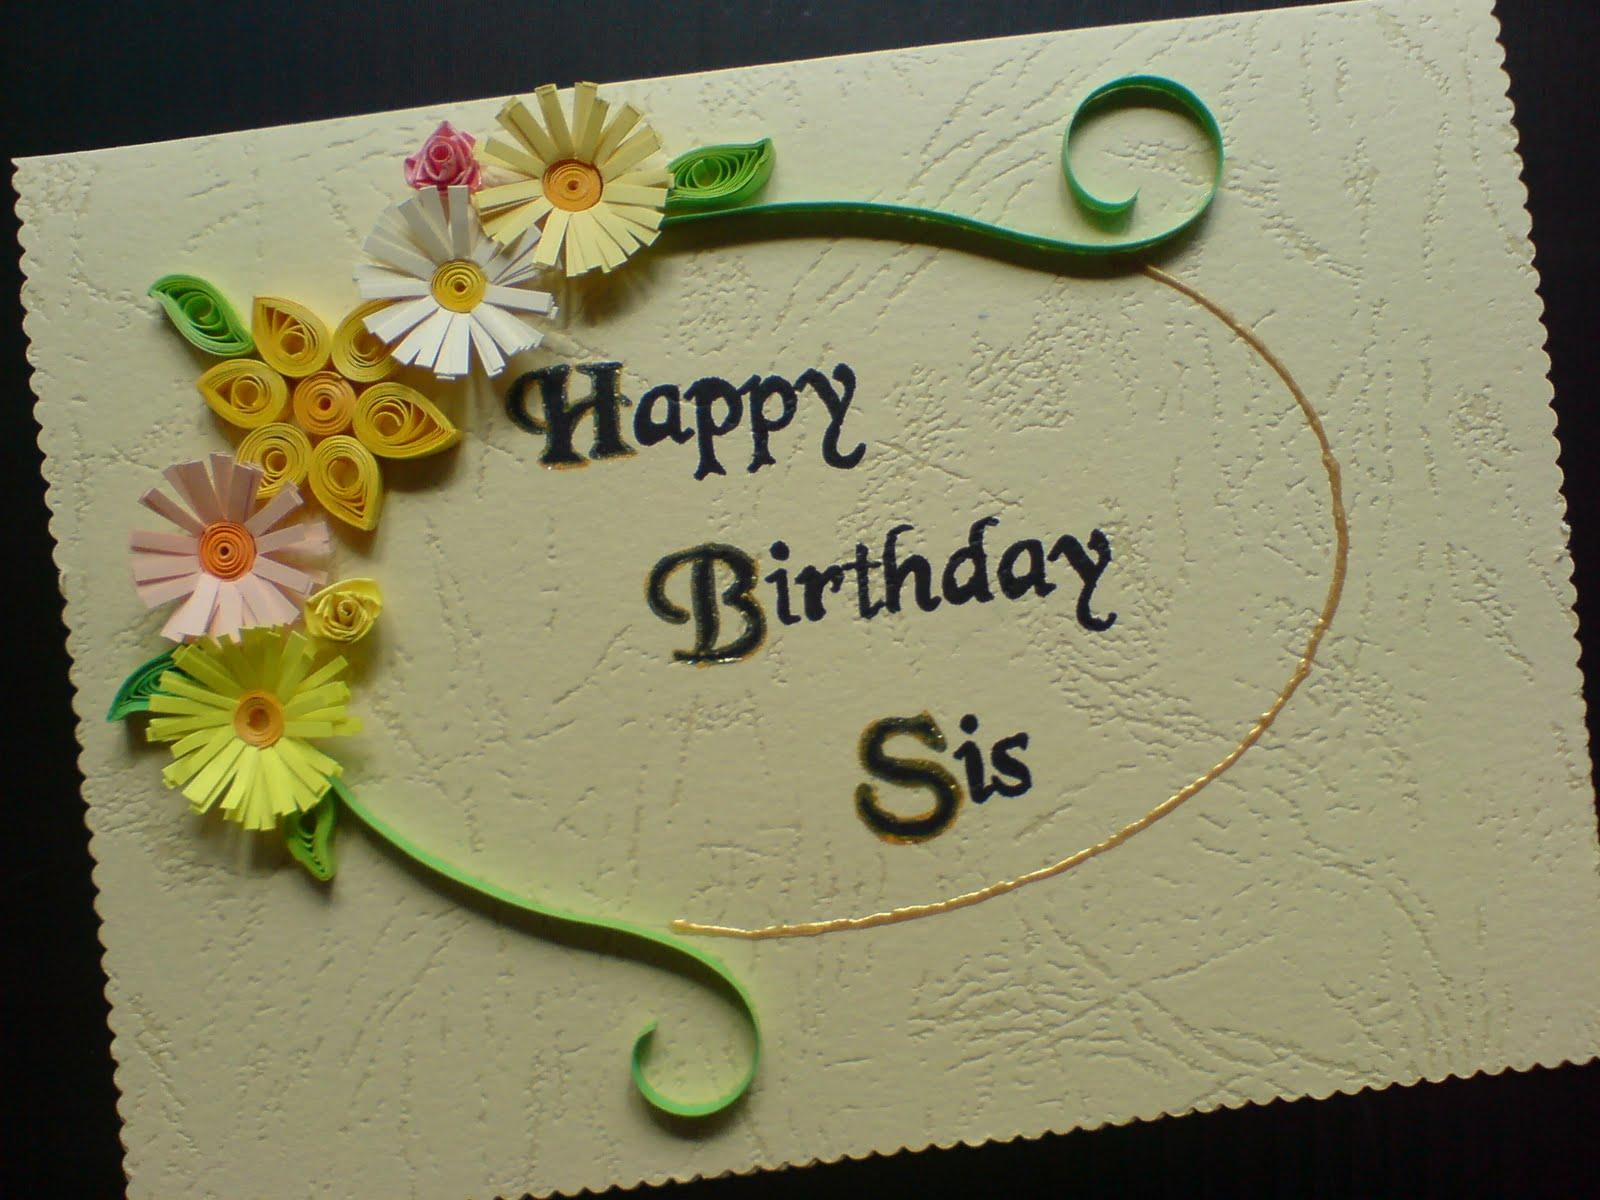 FREE copy of an original Happy Birthday song mp3 personalized with your name Its fun Your name included 10 times in this fun birthday message